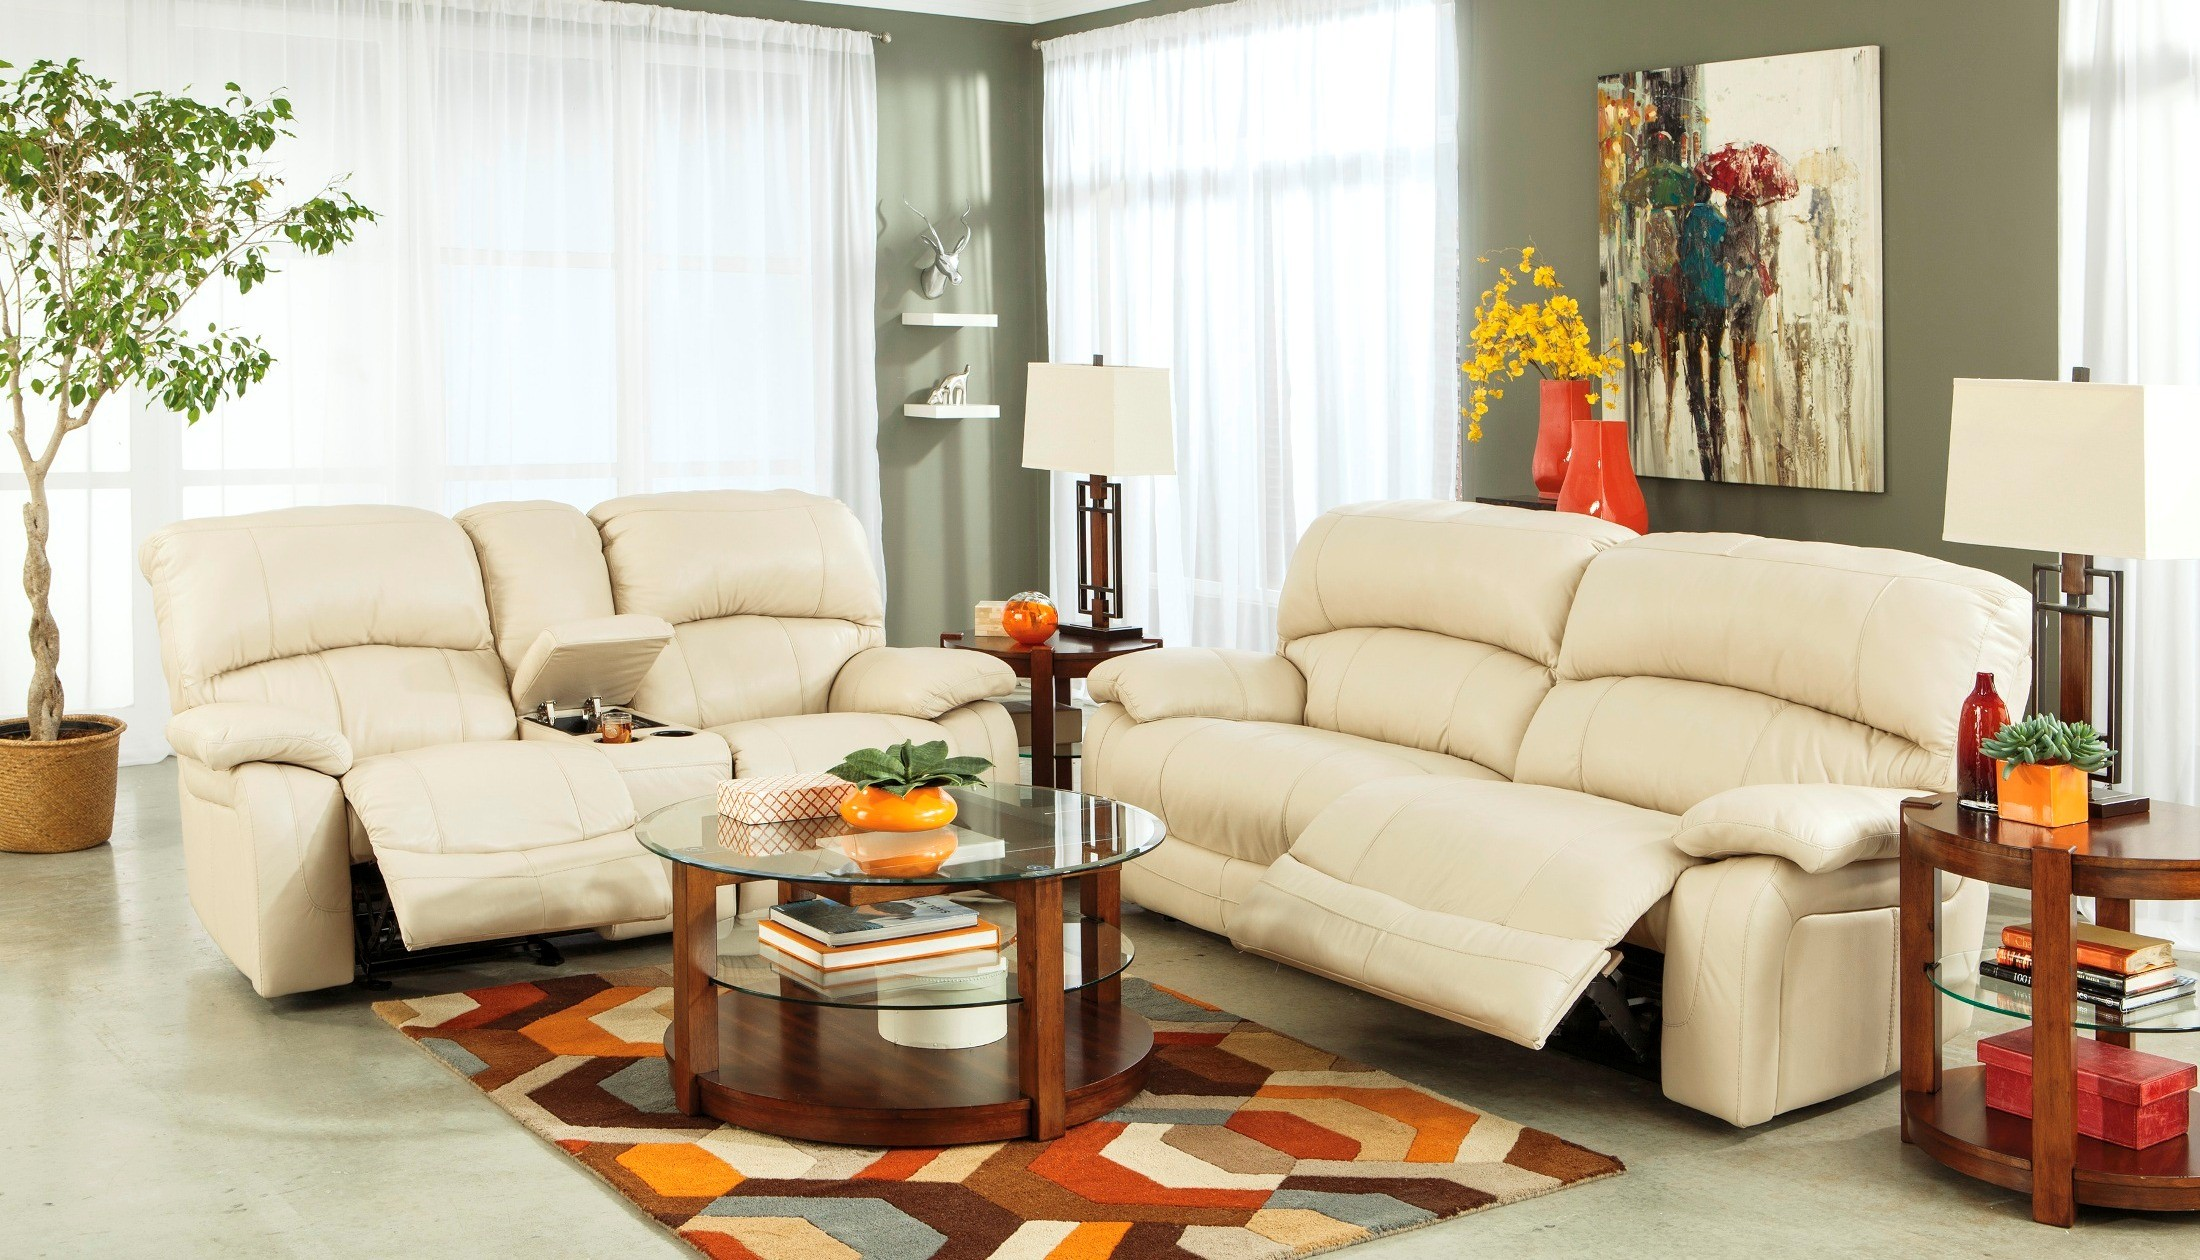 damacio cream power reclining living room set from ashley u98201 47 91 coleman furniture. Black Bedroom Furniture Sets. Home Design Ideas